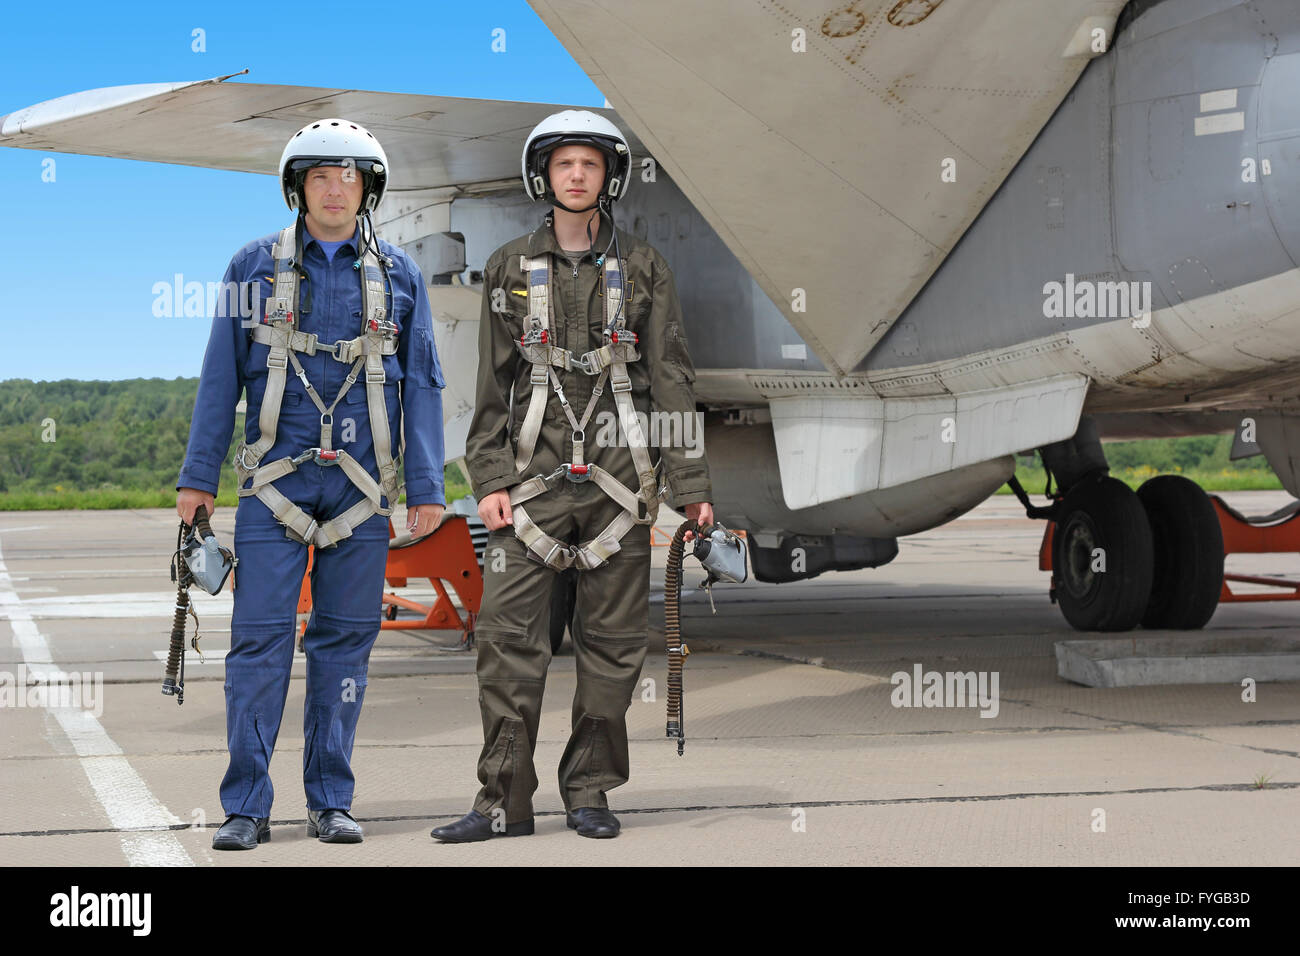 Dating military pilots uniform